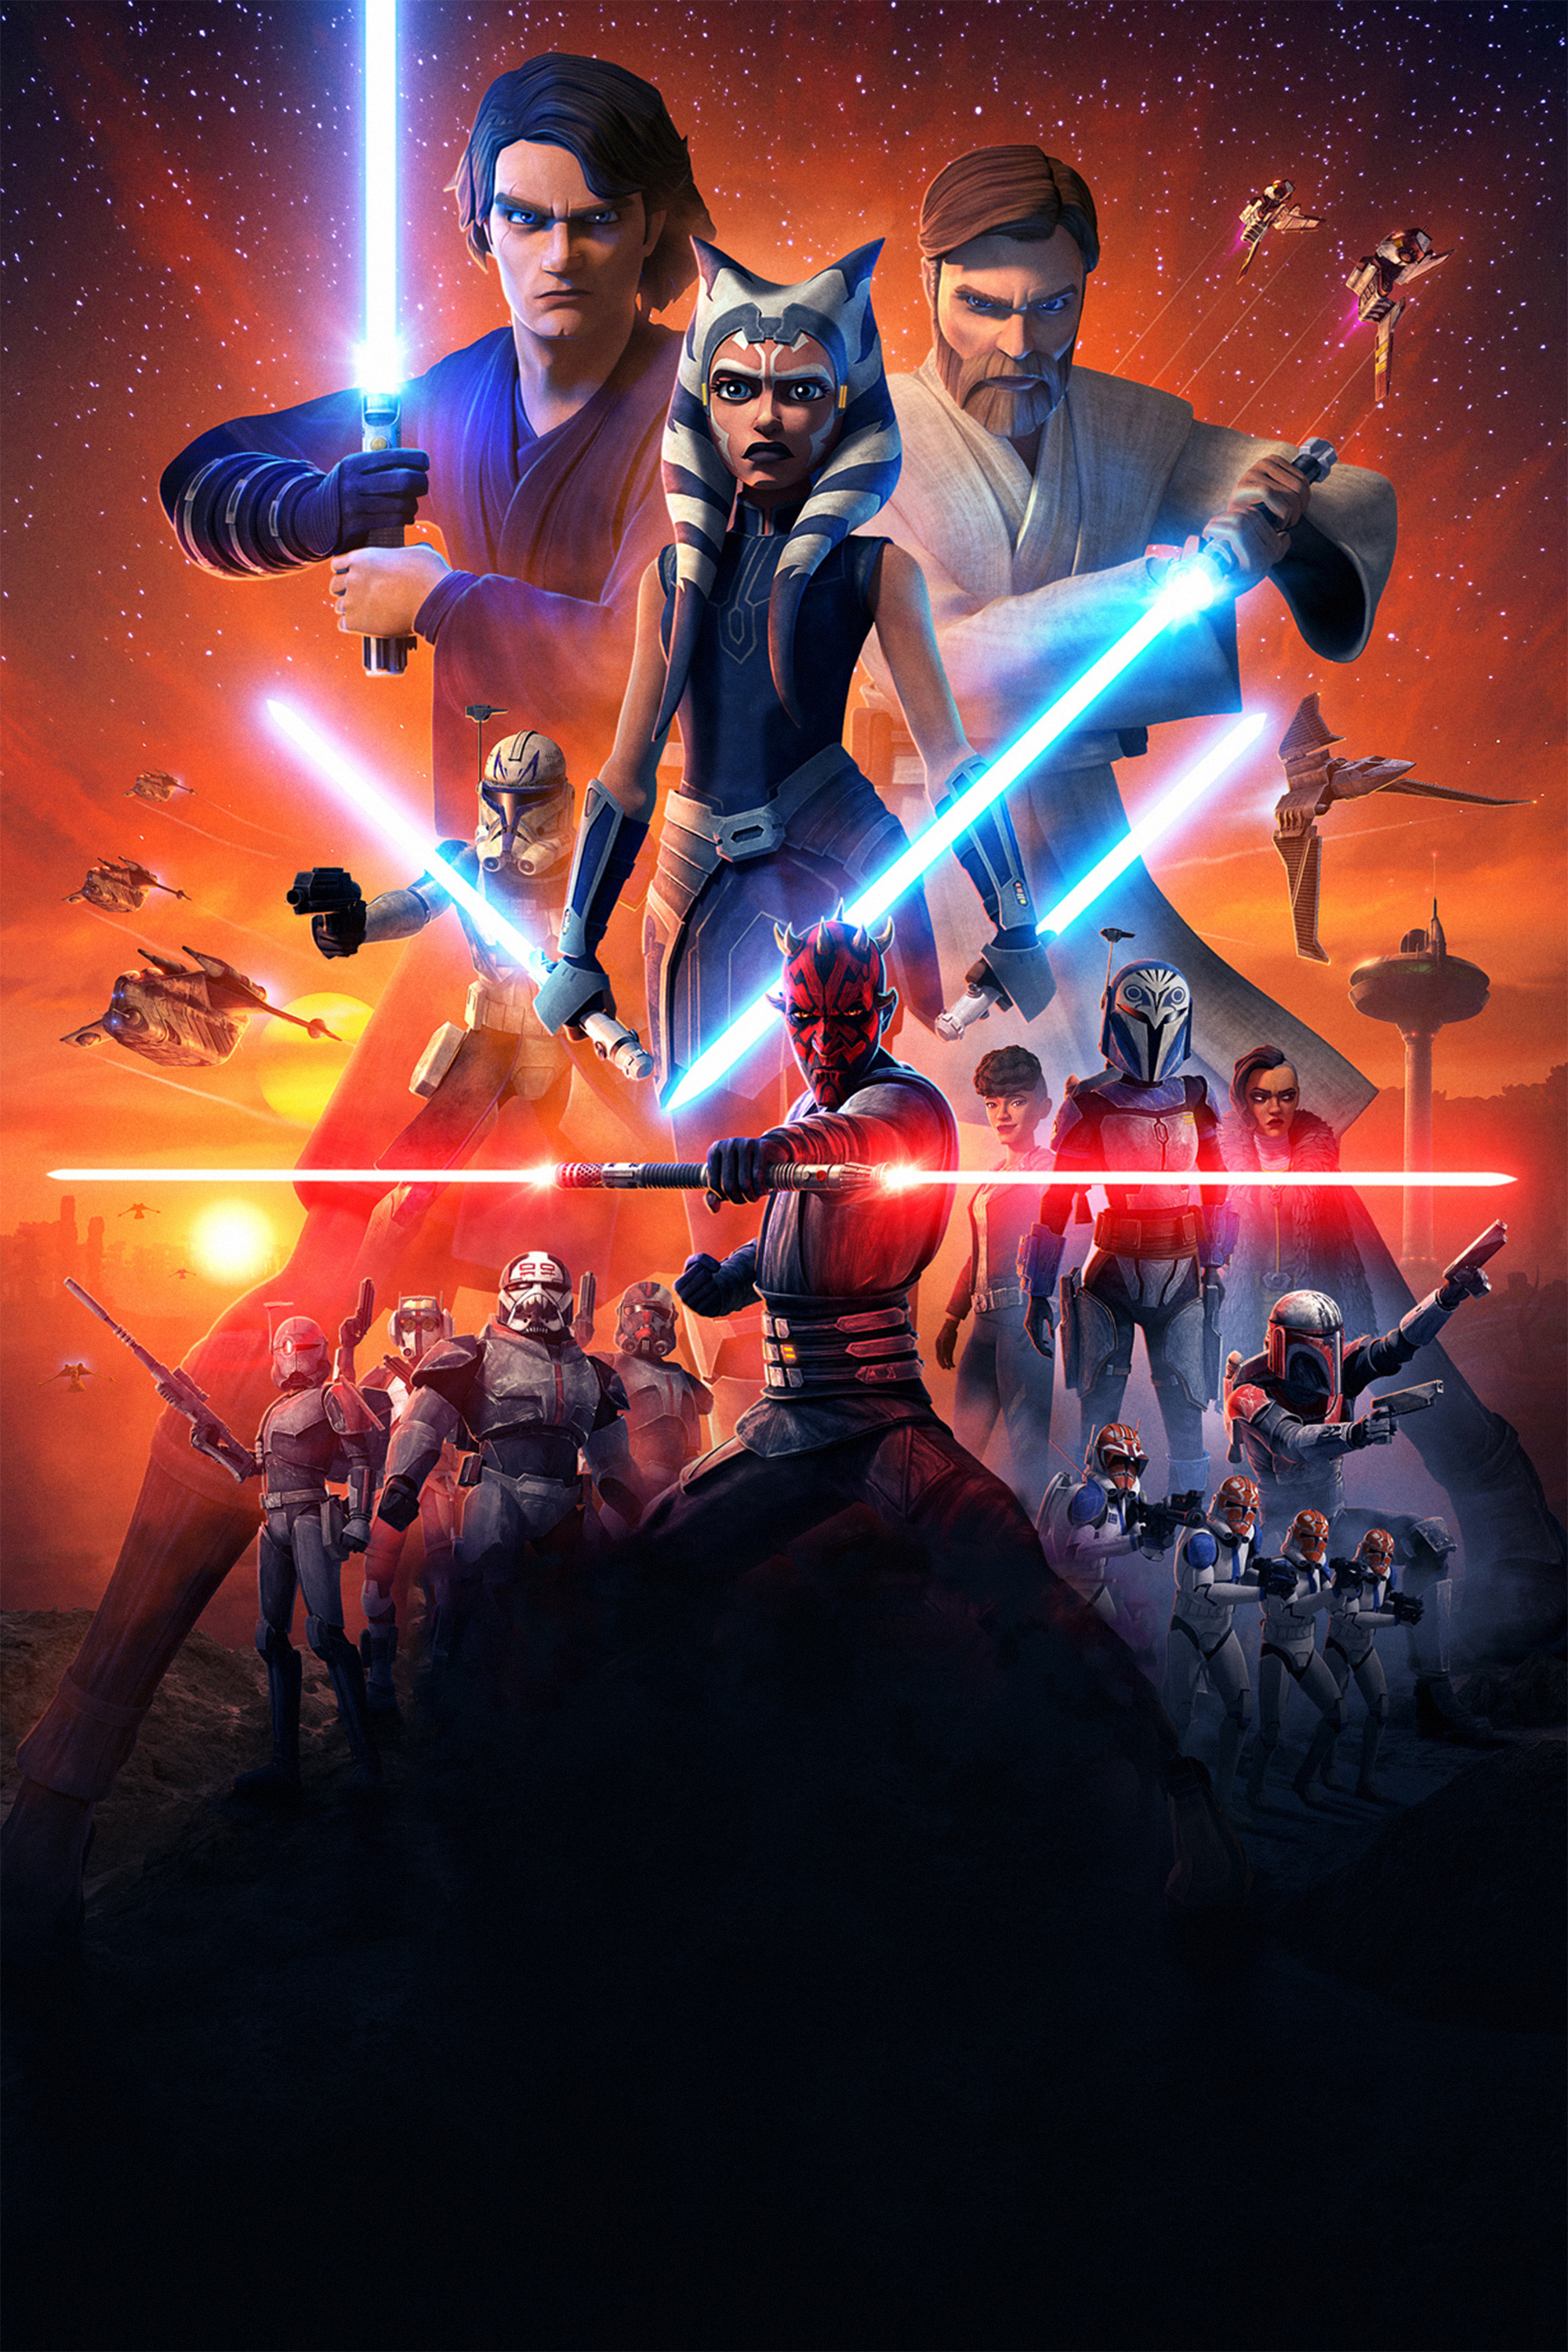 The Clone Wars 2020 Wallpaper Hd Tv Series 4k Wallpapers Images